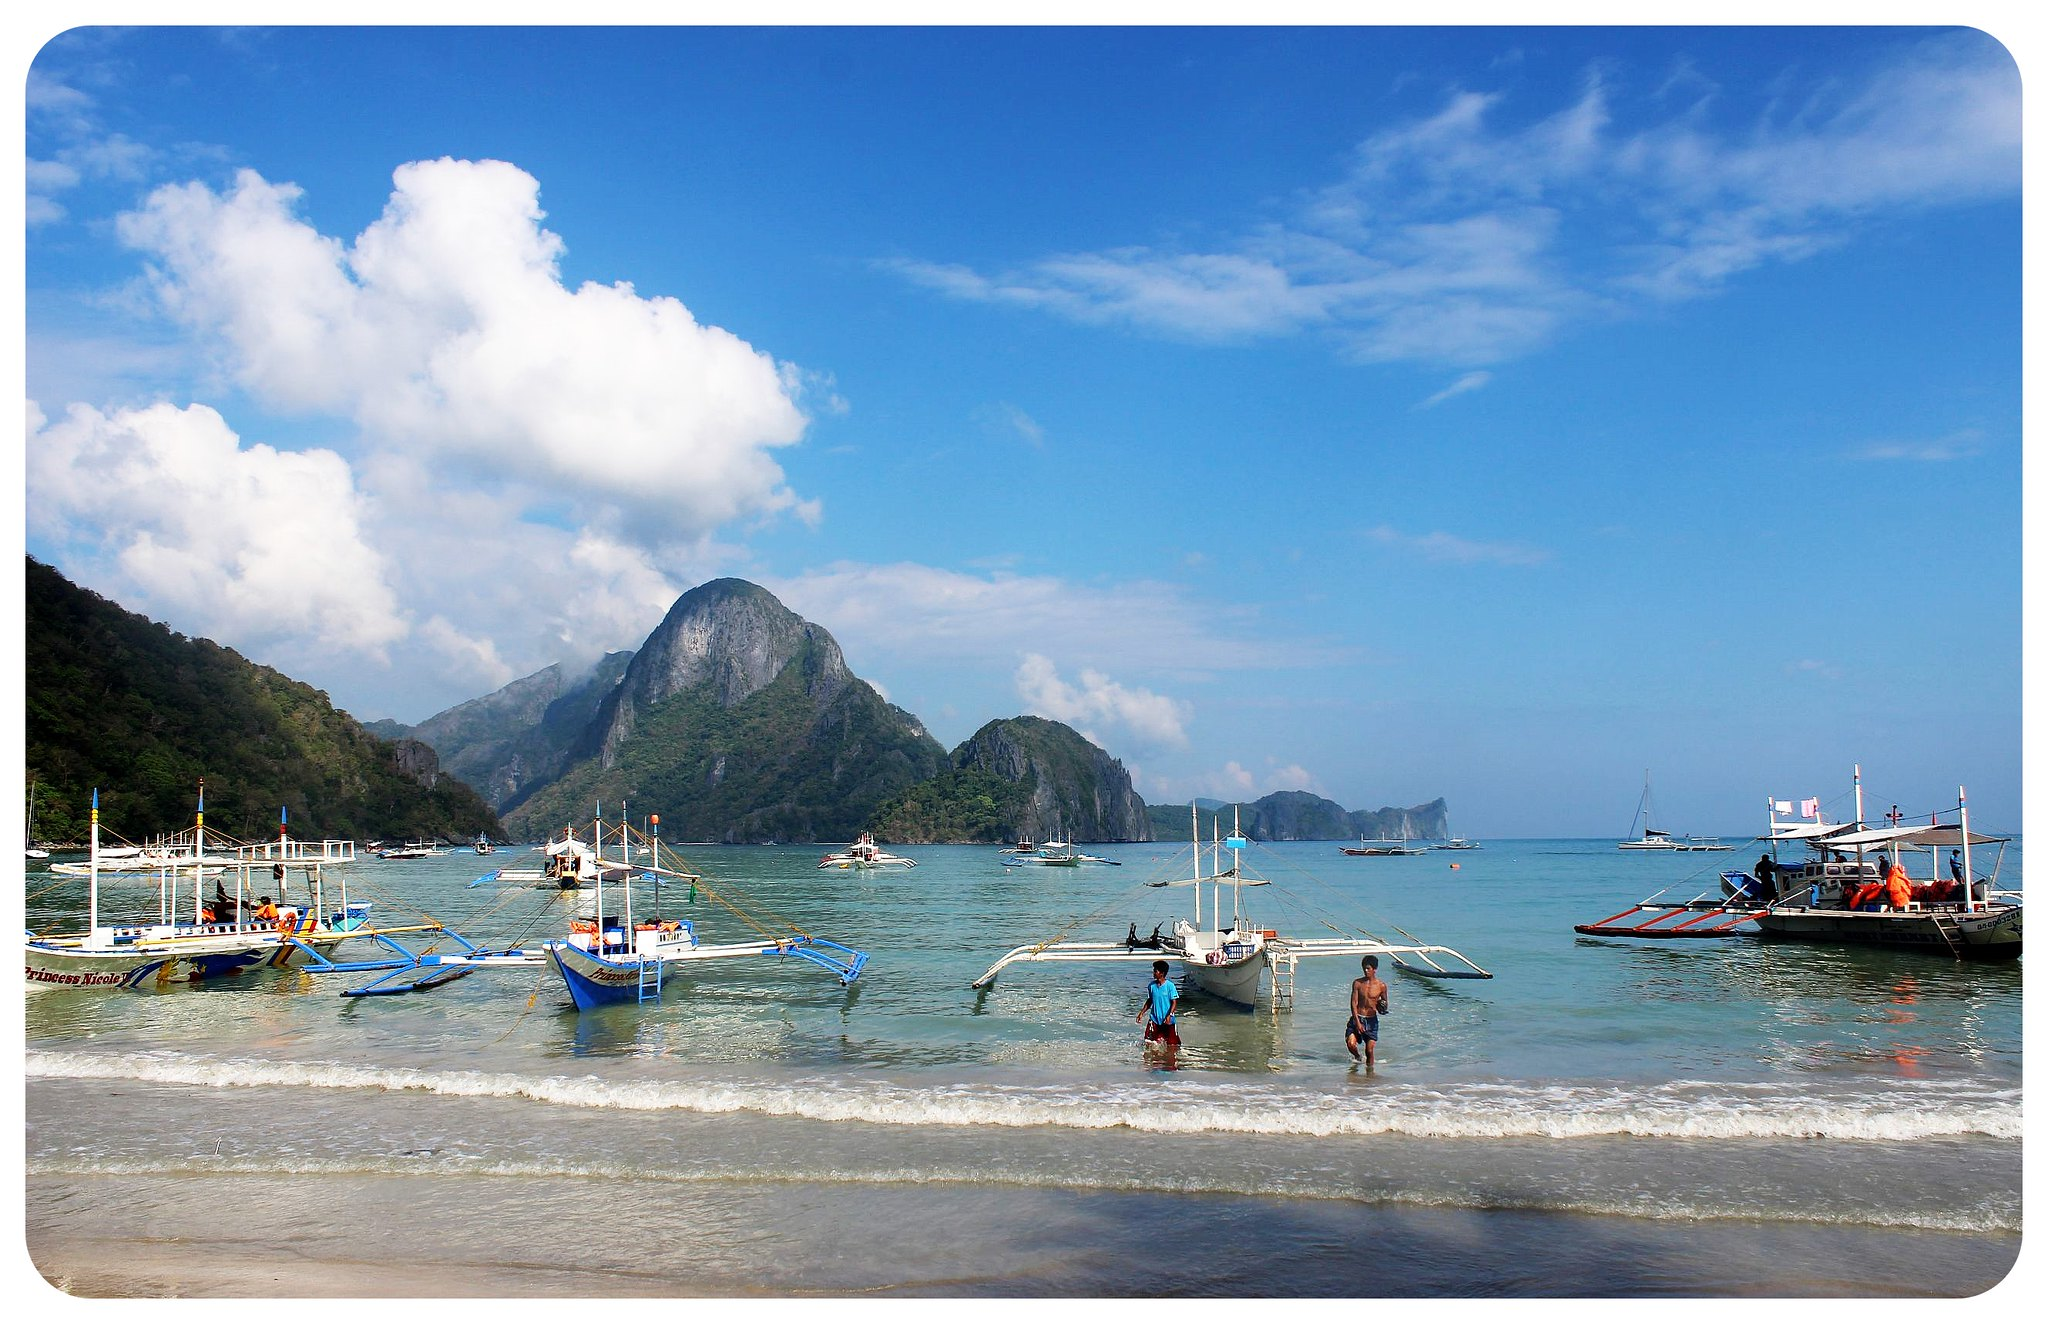 el nido with boats